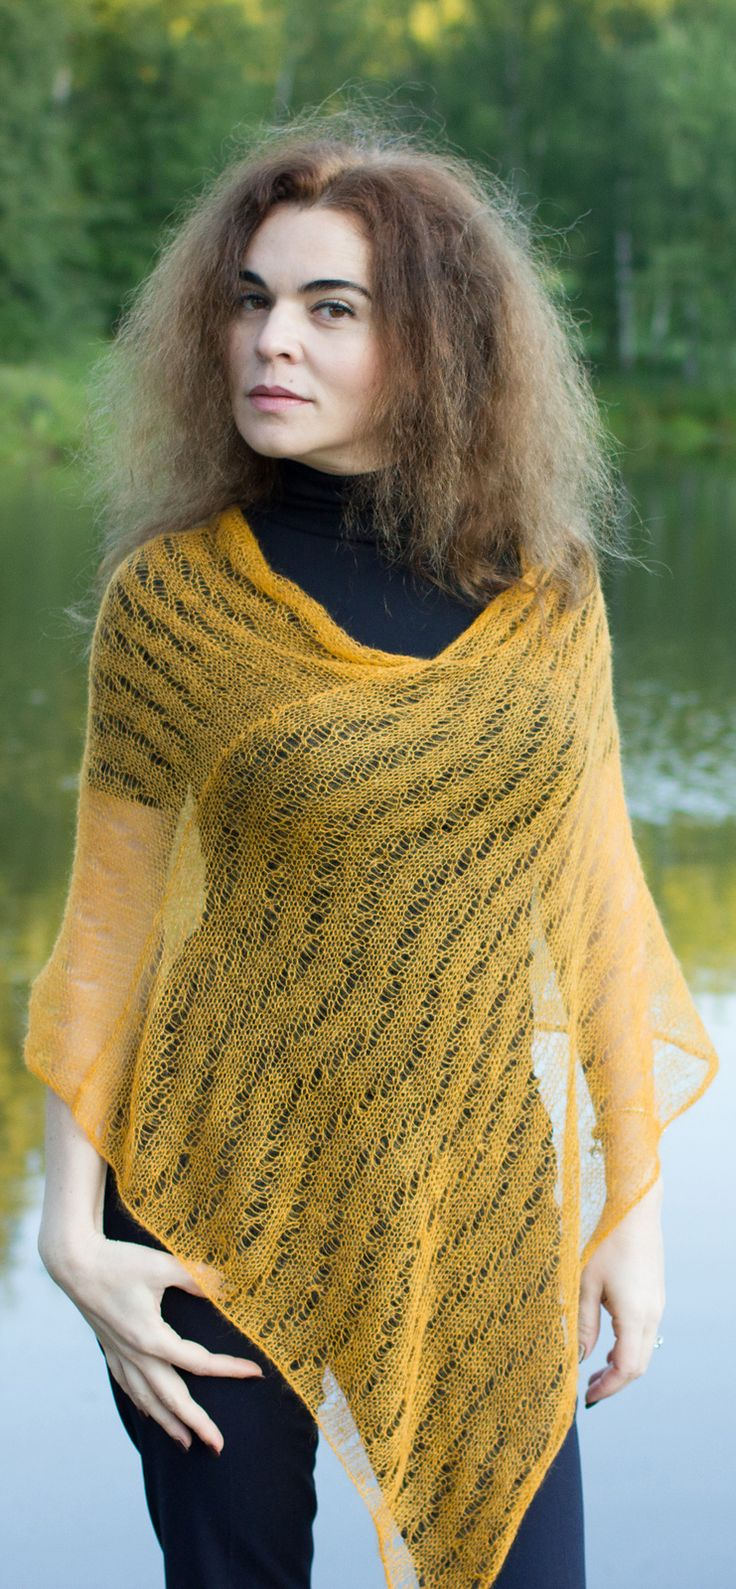 Knitting Poncho Easy : Ravelry lace poncho by tobestudio knitting pattern for